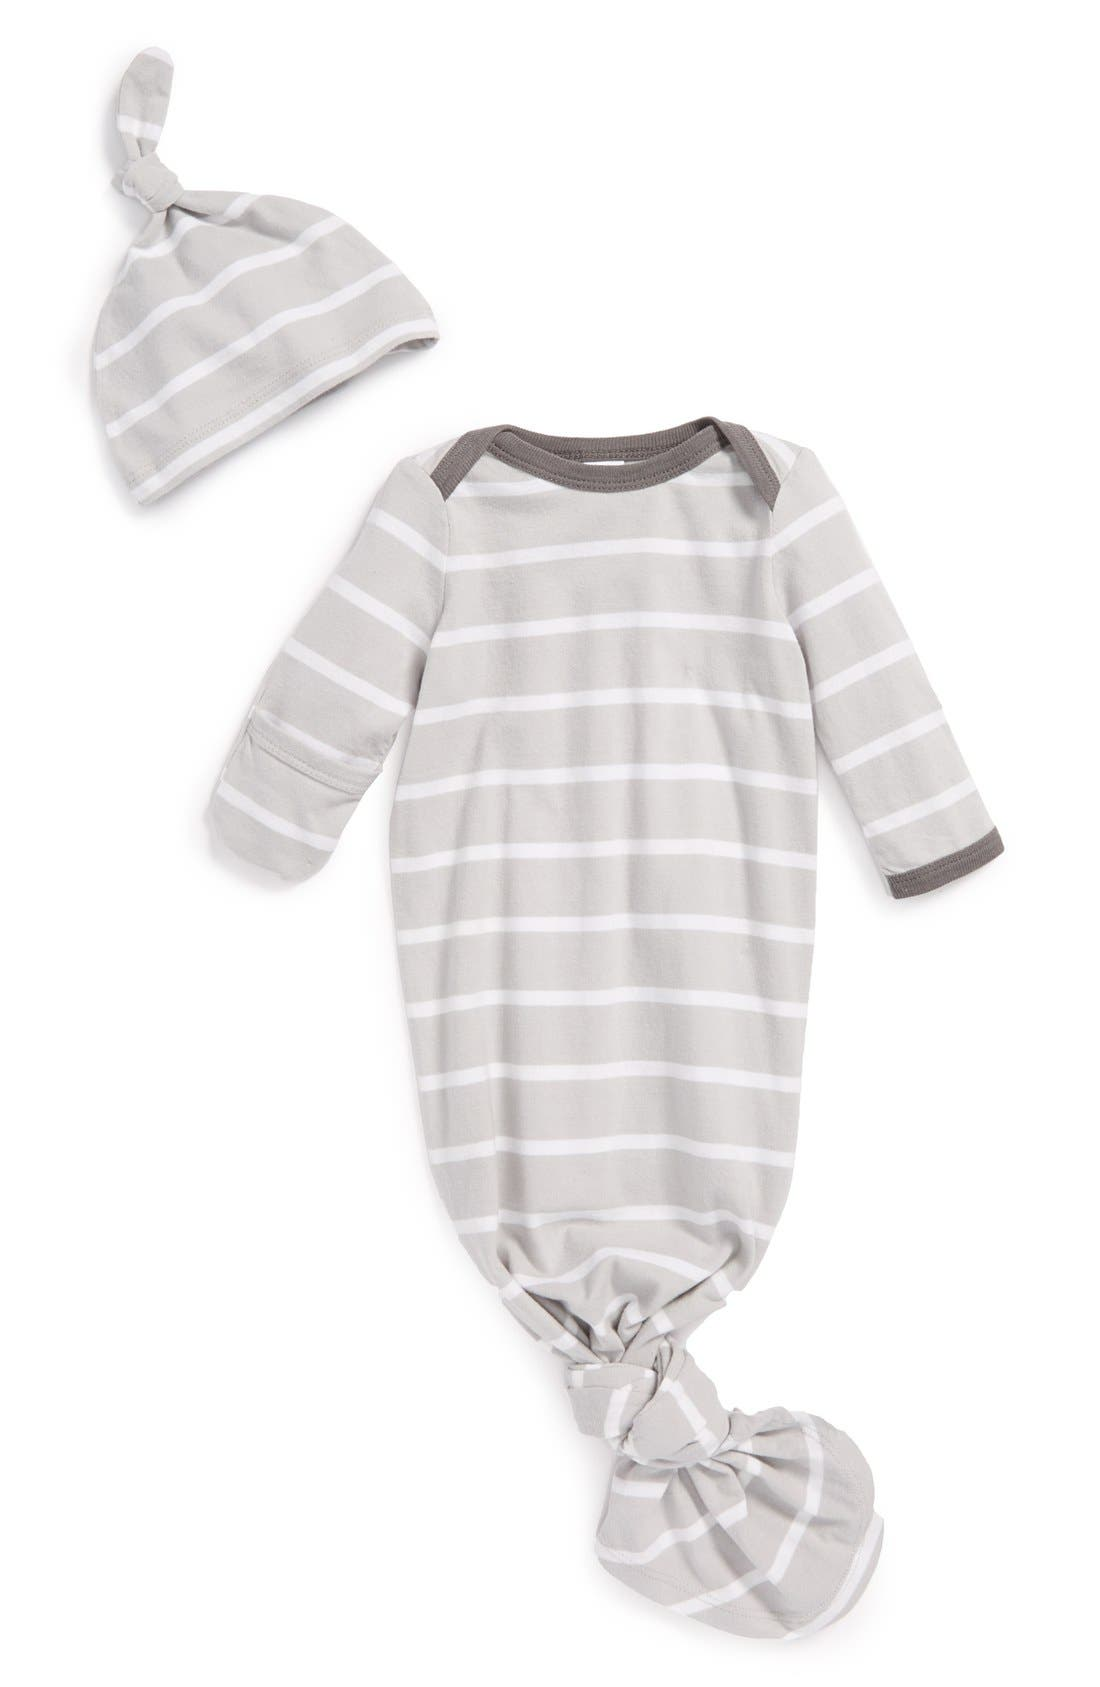 Alternate Image 1 Selected - Nordstrom Cotton Baby Gown & Hat (Baby Girls)